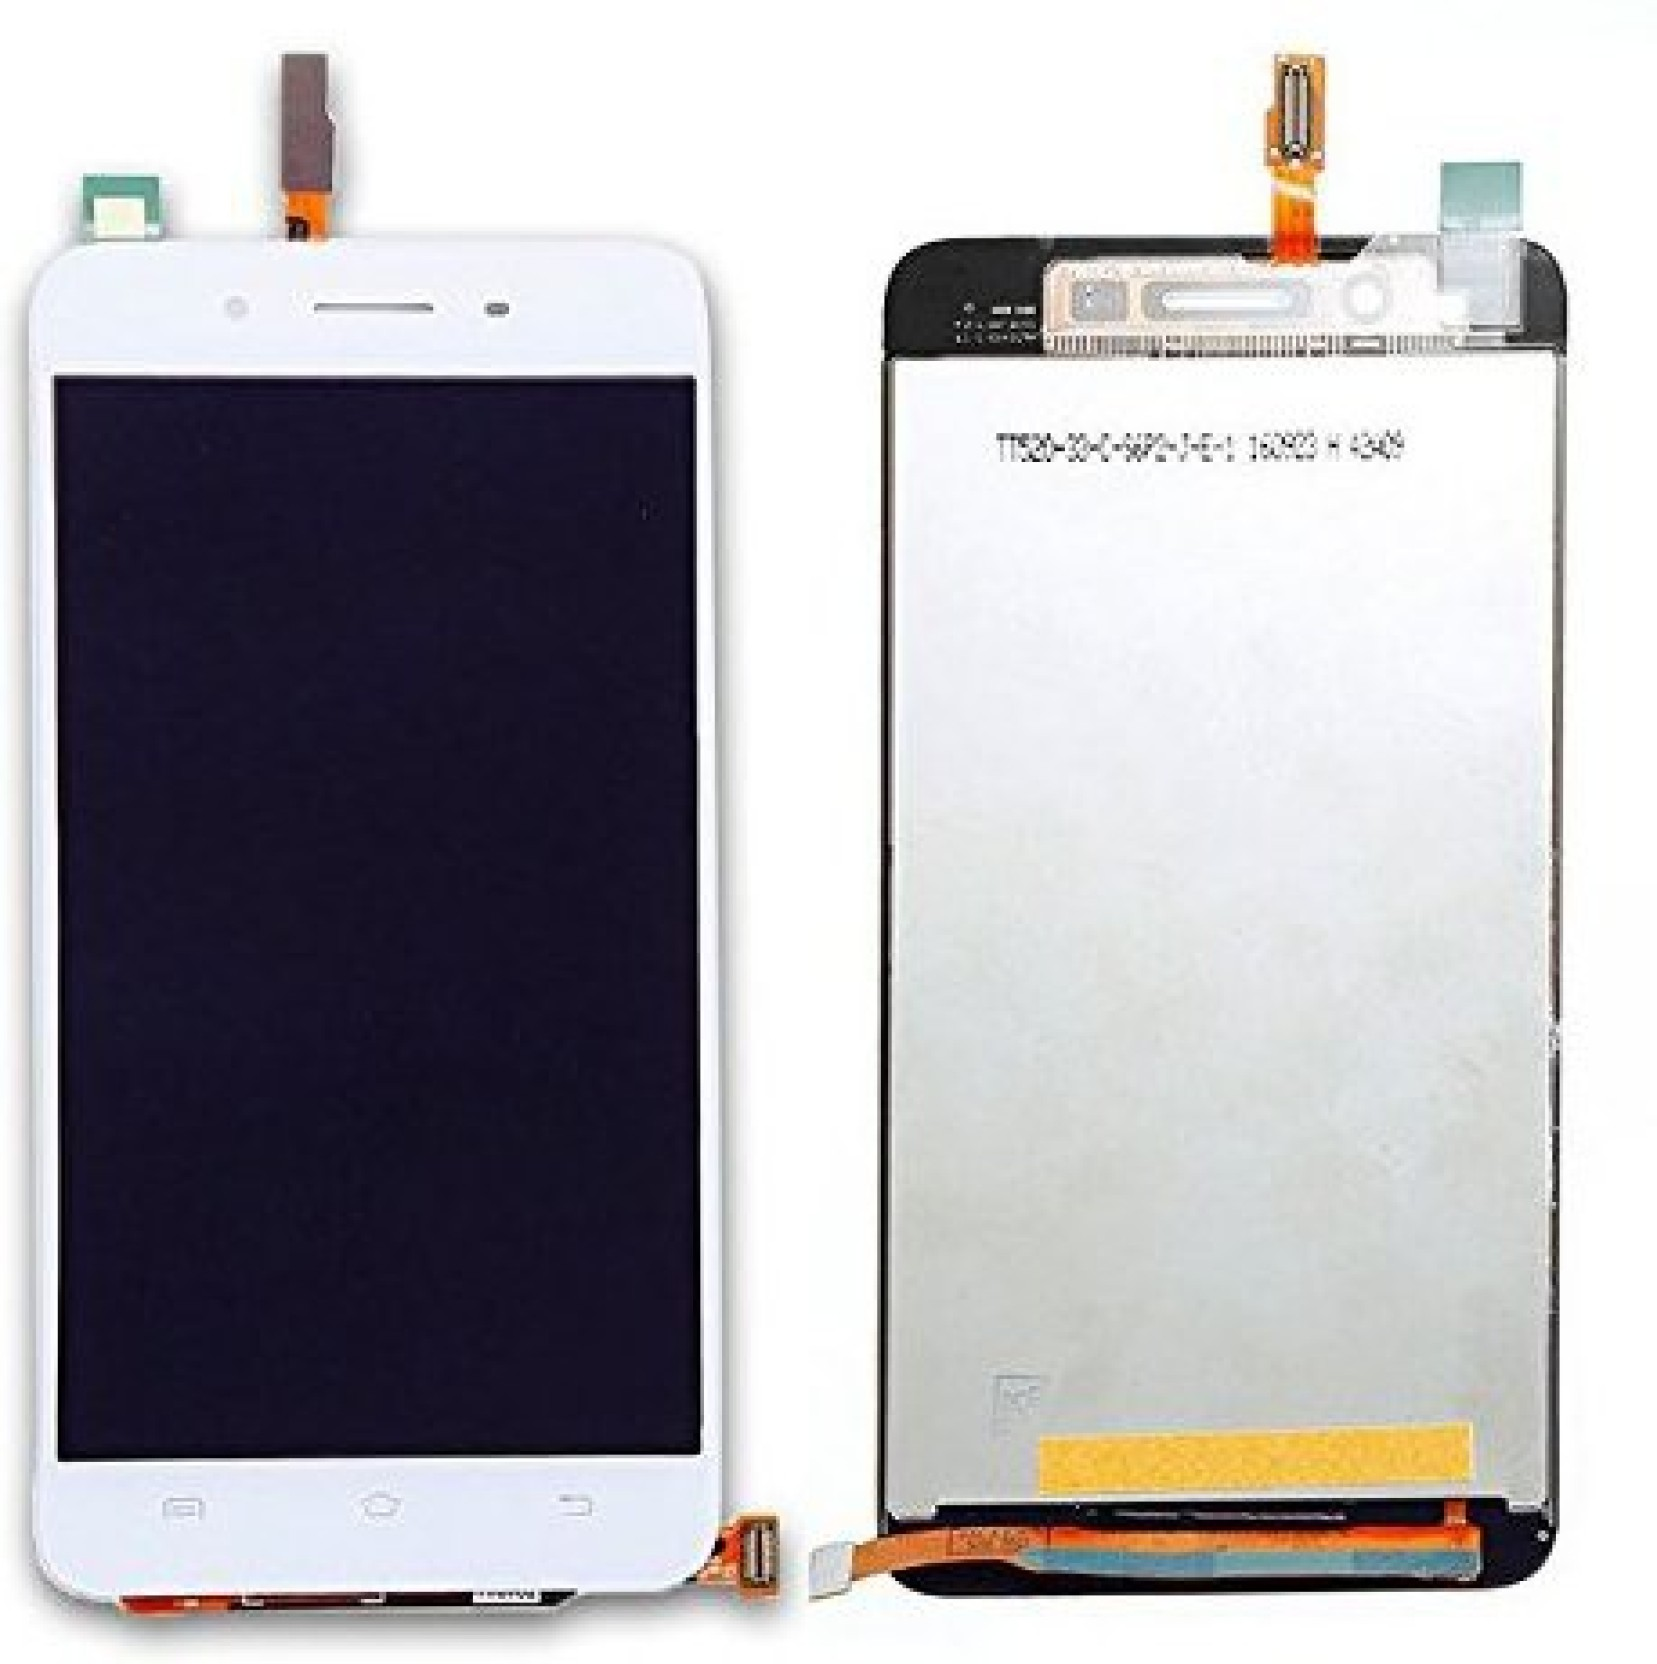 Original Lcd Display Screen Replacement With Touch Digitizer Samsung Galaxy Grand Neo Plus Oem Home